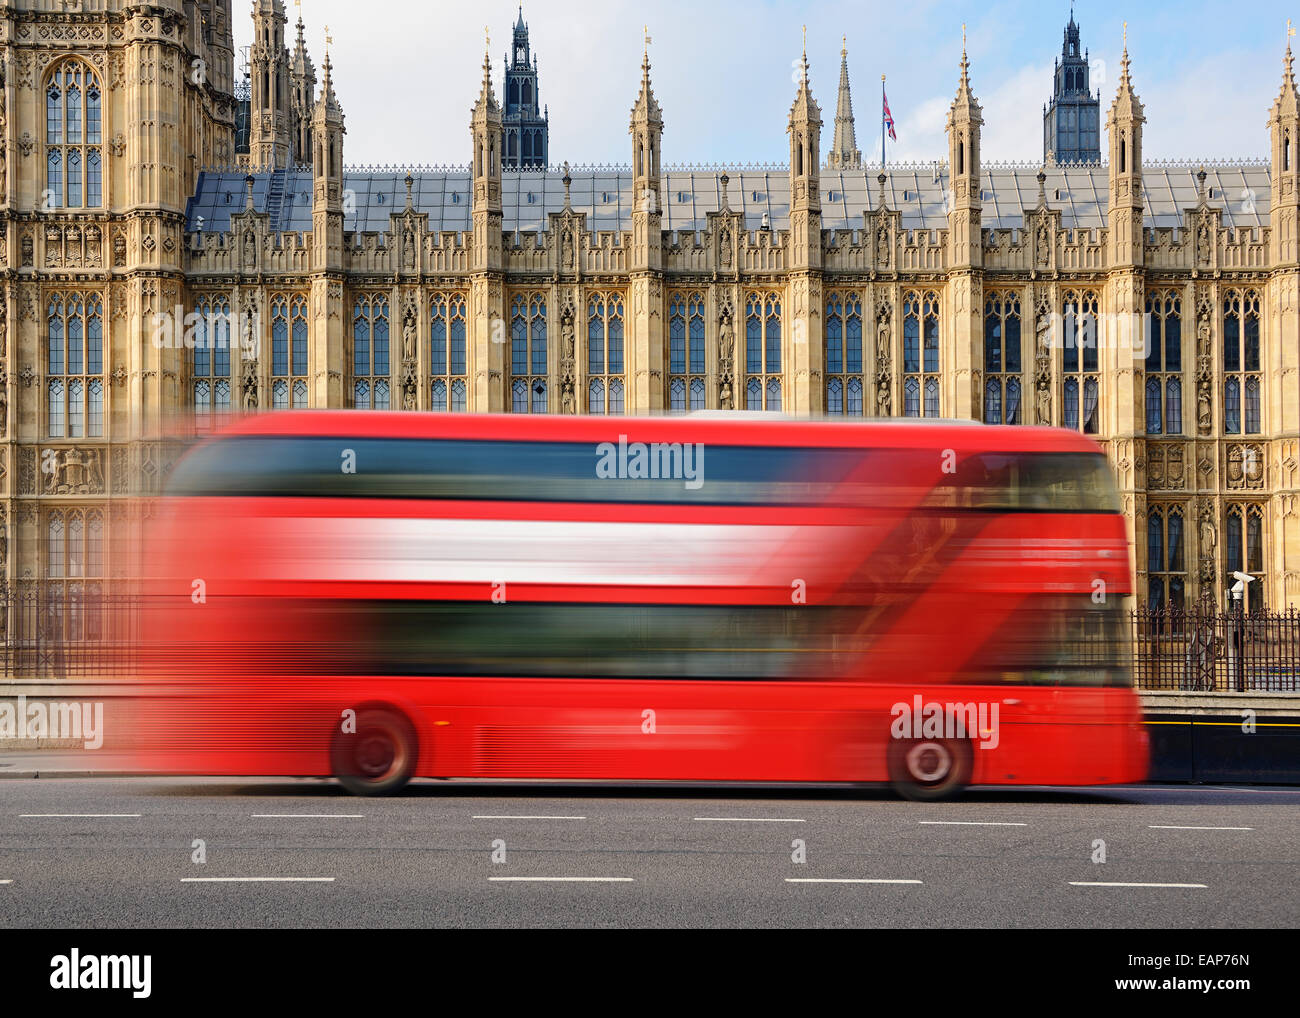 London Bus Going Past the Houses of Parliament, Westminster, London, UK. - Stock Image